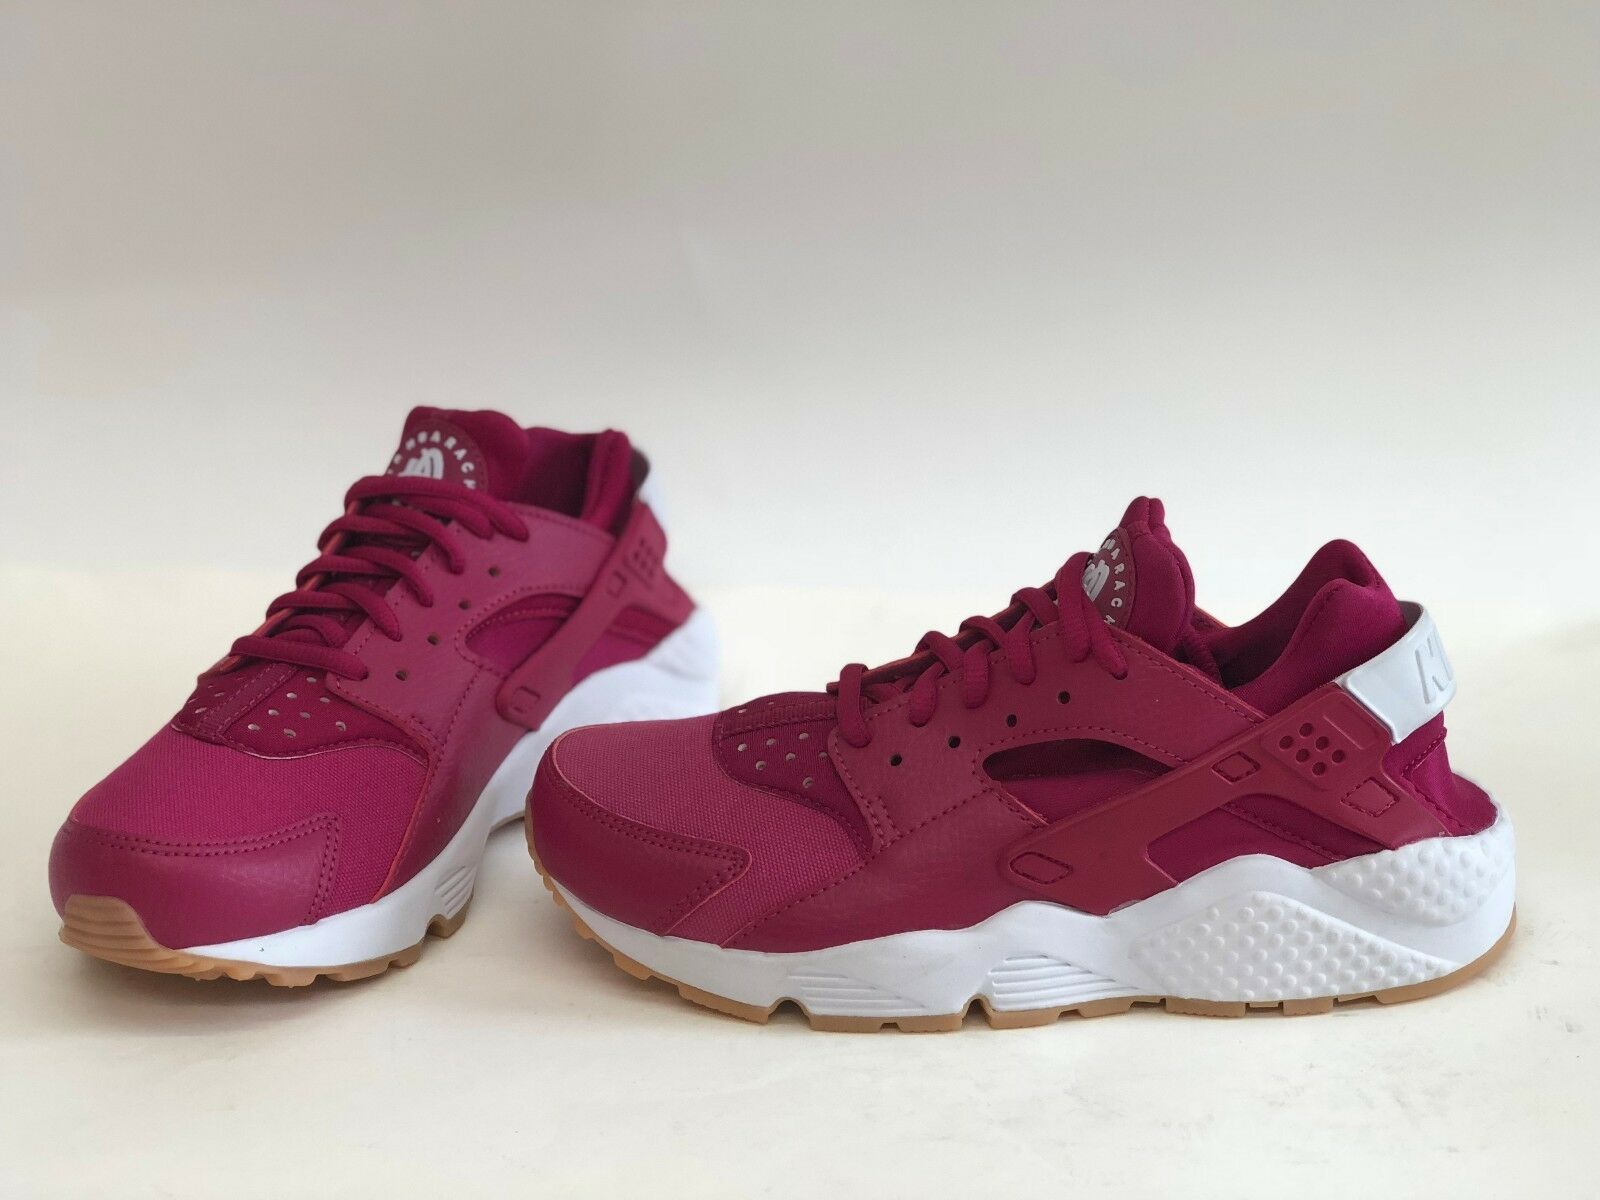 NIB WOMENS SIZE 7 NIKE AIR HUARACHE RUN SNEAKERS FUCHSIA 634835 606